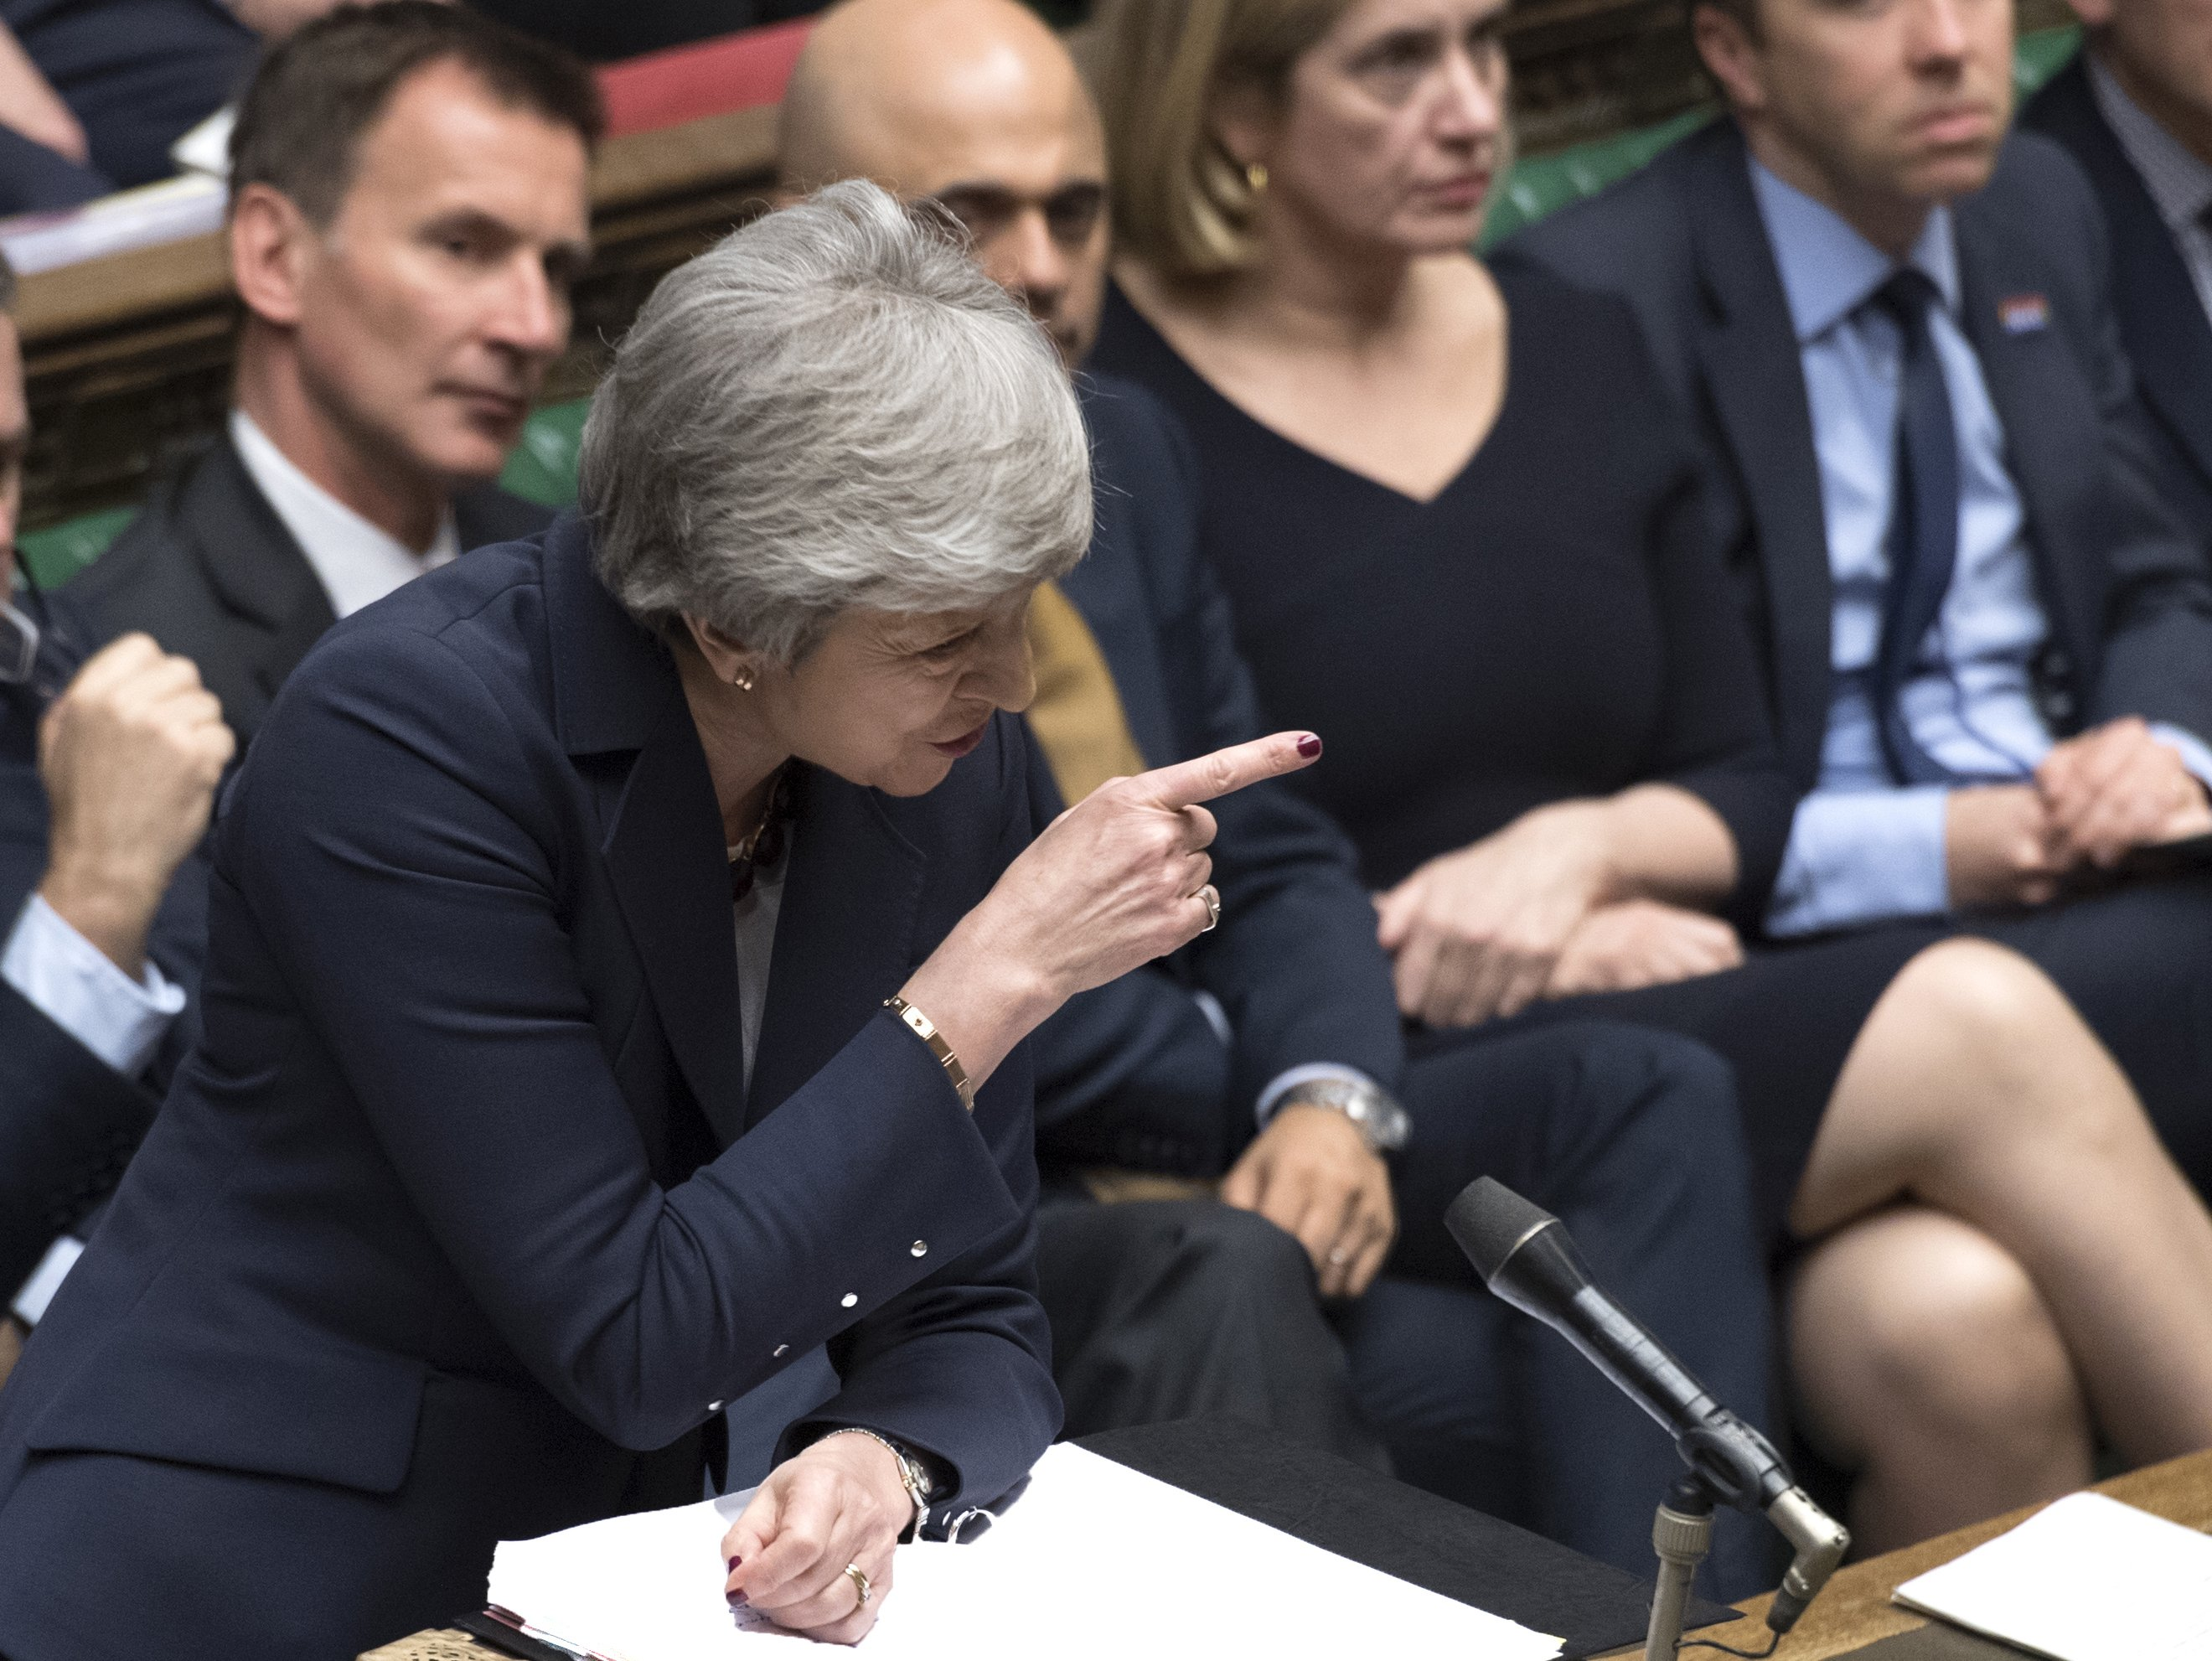 Prime Minister May says she'll step down if Brexit deal OK'd